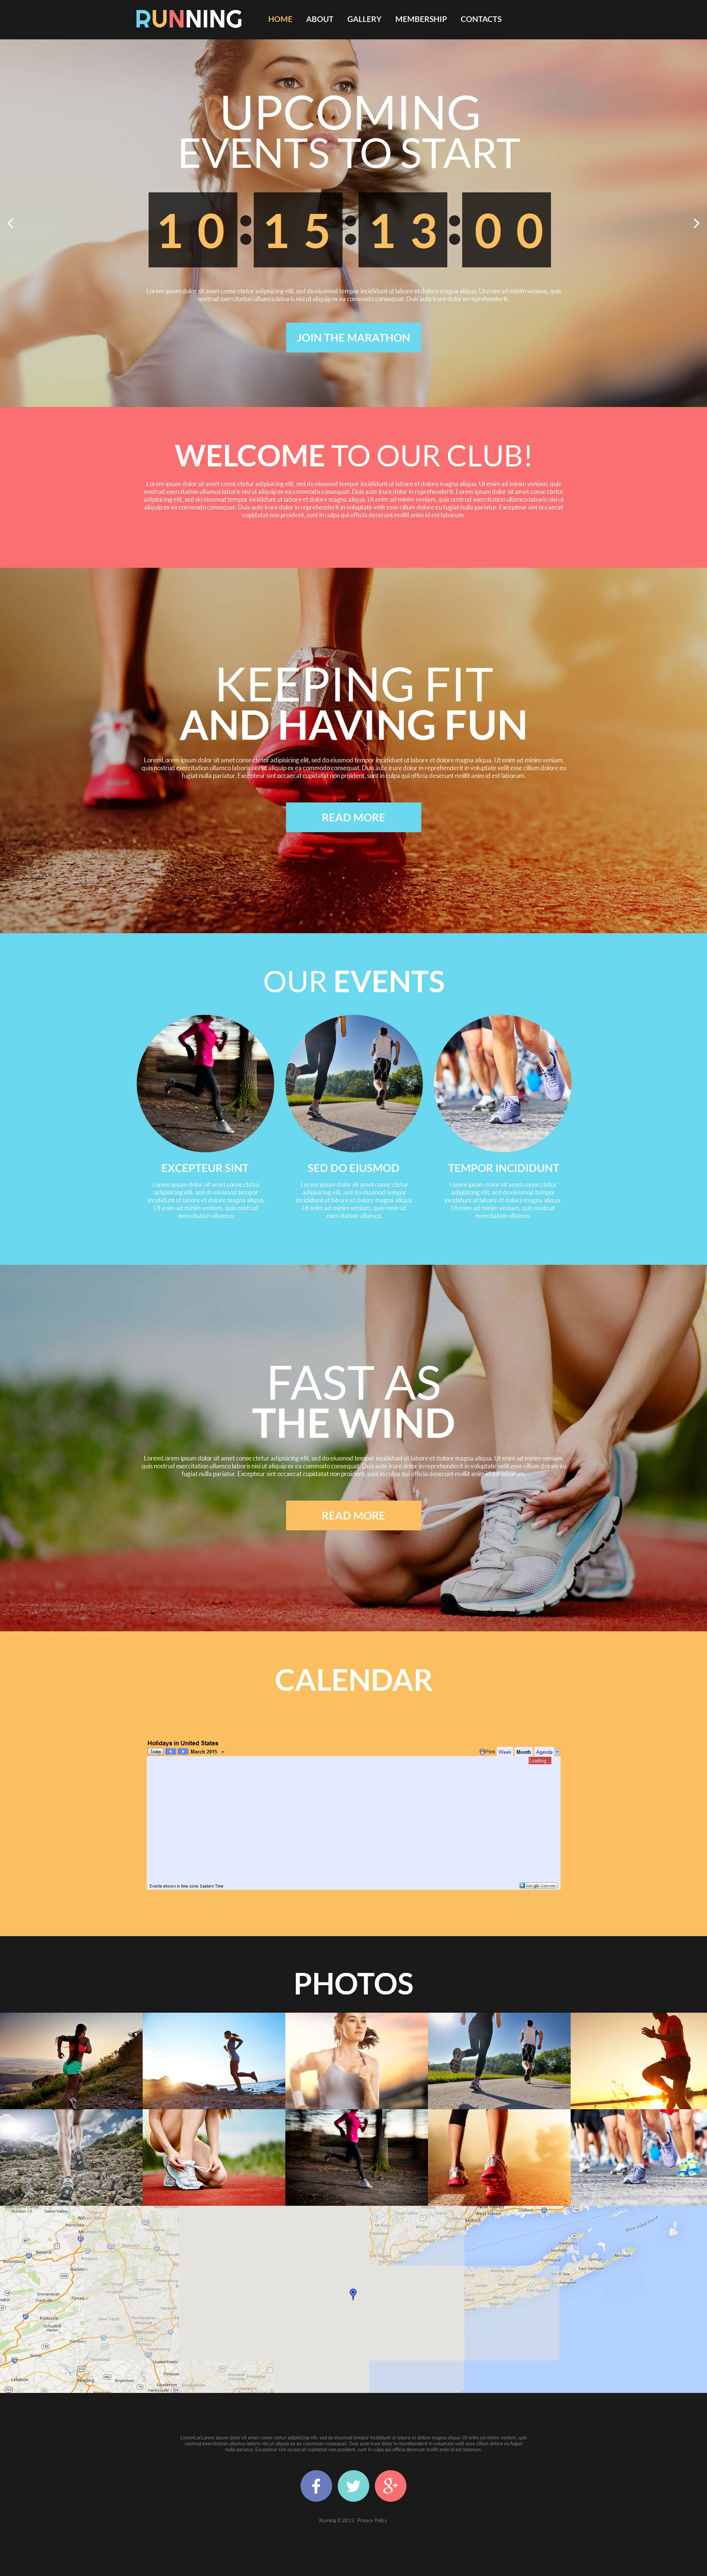 The Running Club Moto CMS HTML Design 53218, one of the best Moto CMS HTML templates of its kind (sport, most popular), also known as running club Moto CMS HTML template, jogging Moto CMS HTML template, entertainment Moto CMS HTML template, races Moto CMS HTML template, championship Moto CMS HTML template, tournament Moto CMS HTML template, sportsman Moto CMS HTML template, training Moto CMS HTML template, community Moto CMS HTML template, schedule Moto CMS HTML template, application Moto CMS HTML template, track Moto CMS HTML template, statistic Moto CMS HTML template, fan Moto CMS HTML template, media Moto CMS HTML template, ticket Moto CMS HTML template, interview Moto CMS HTML template, coacher Moto CMS HTML template, leadership Moto CMS HTML template, team Moto CMS HTML template, energy Moto CMS HTML template, skill Moto CMS HTML template, sponsors Moto CMS HTML template, gallery and related with running club, jogging, entertainment, races, championship, tournament, sportsman, training, community, schedule, application, track, statistic, fan, media, ticket, interview, coacher, leadership, team, energy, skill, sponsors, gallery, etc.